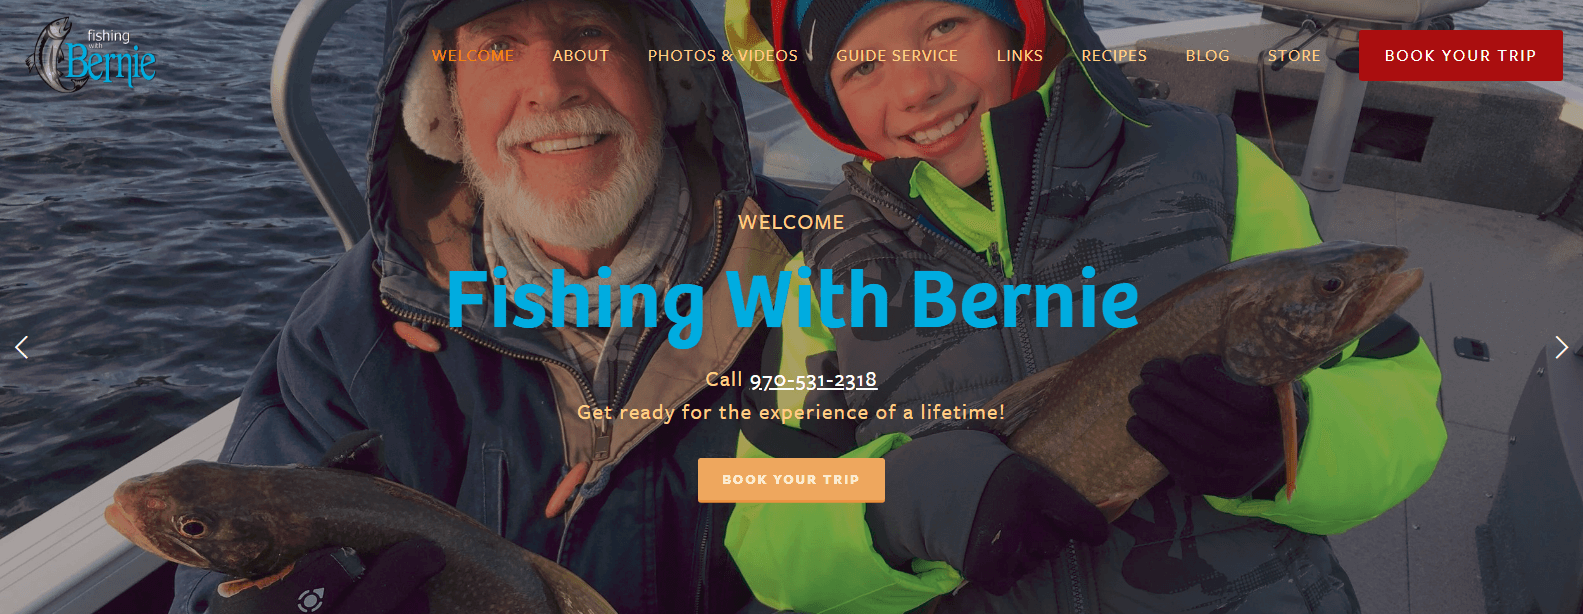 Fishing With Bernie